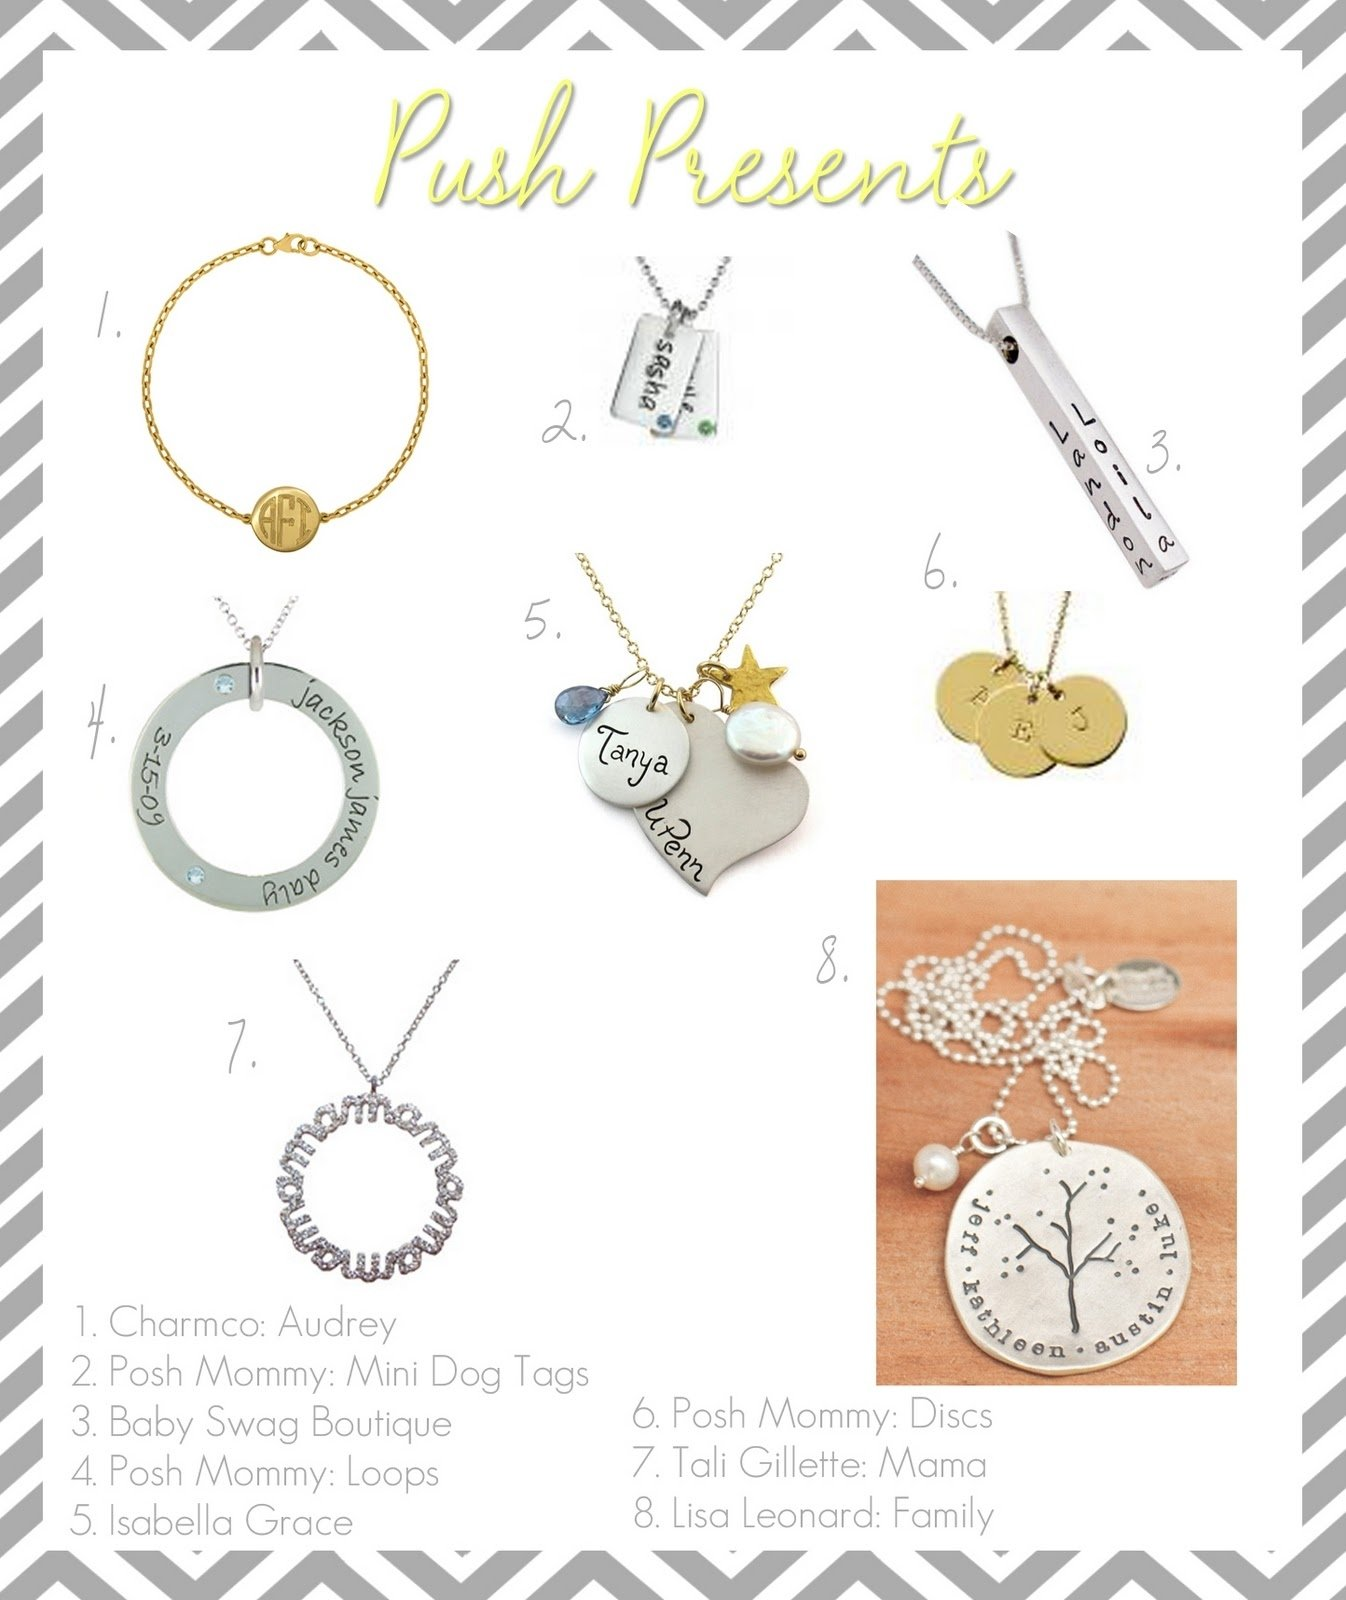 10 Beautiful Push Present Ideas For Mom longmont jewelry gifts for mom birthstone gifts diamond necklace 3 2021